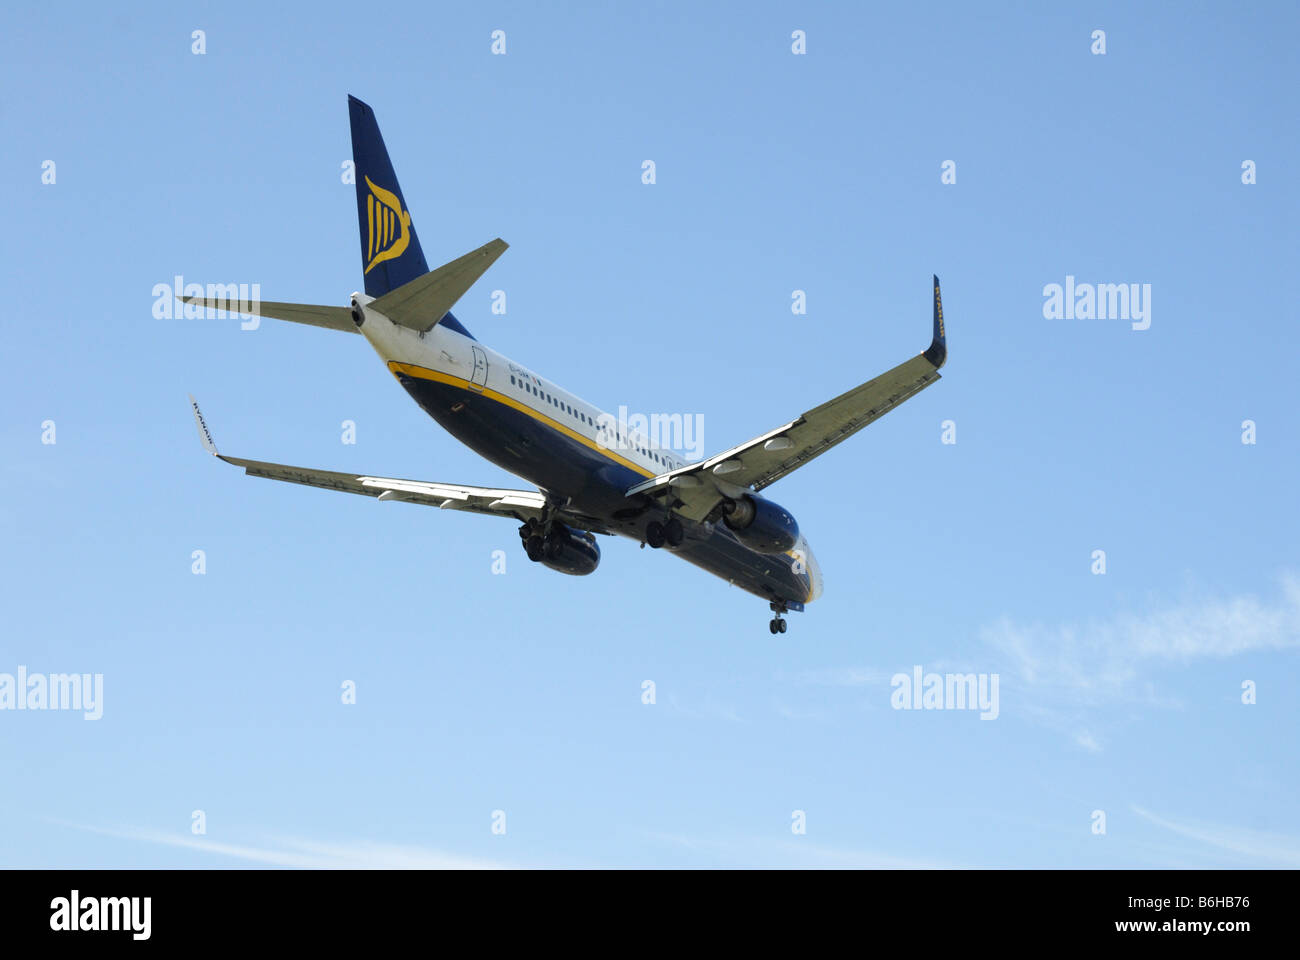 Ryanair  jet on approach to airport - Stock Image